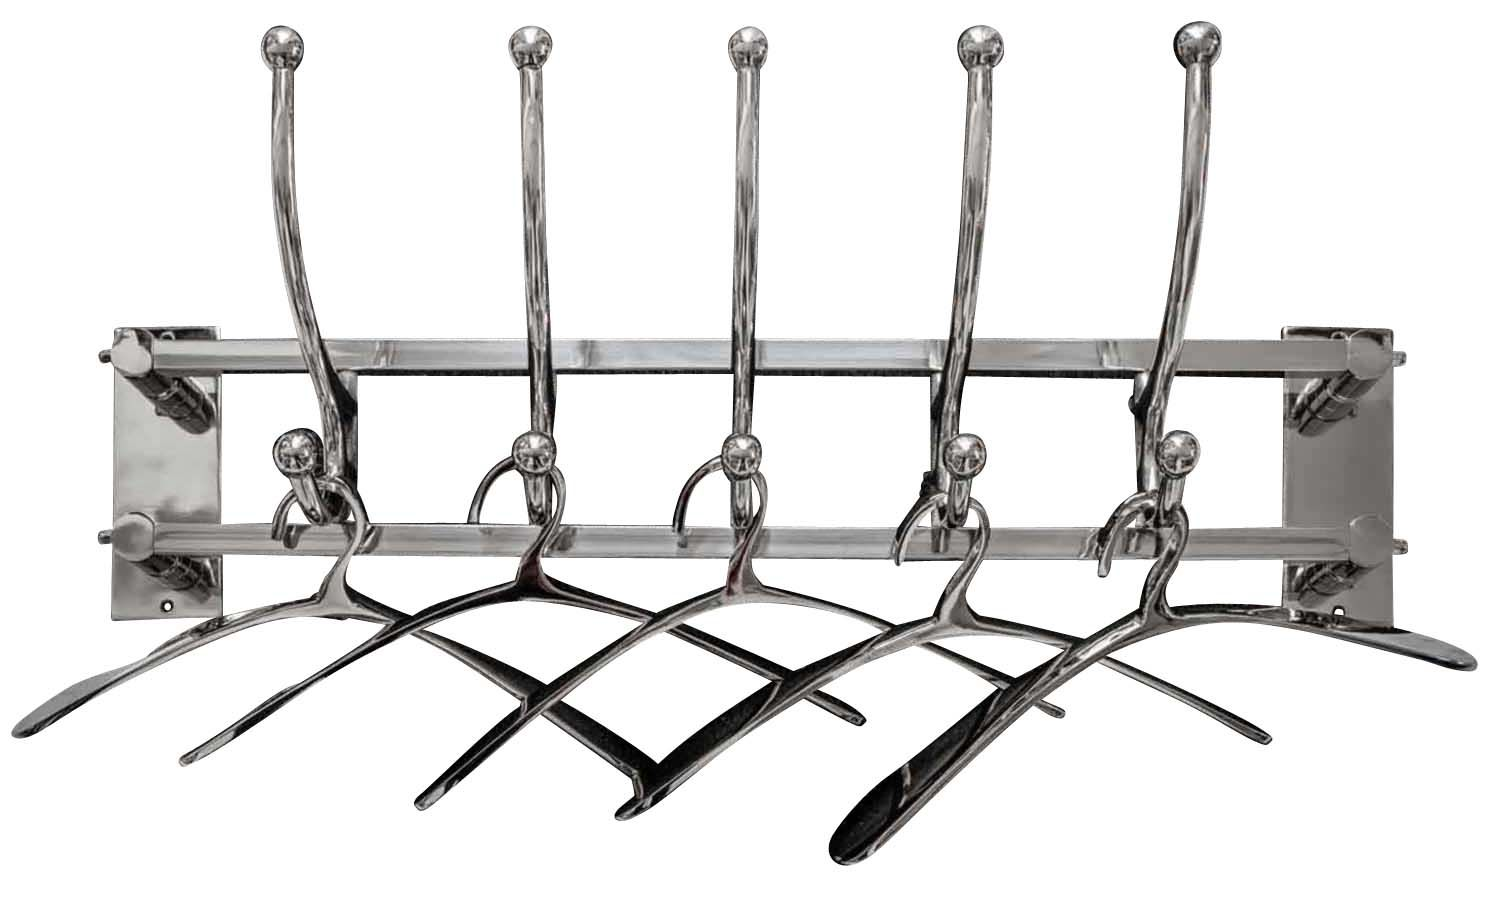 Vintage Coat Rack With 5 Coat Hangers